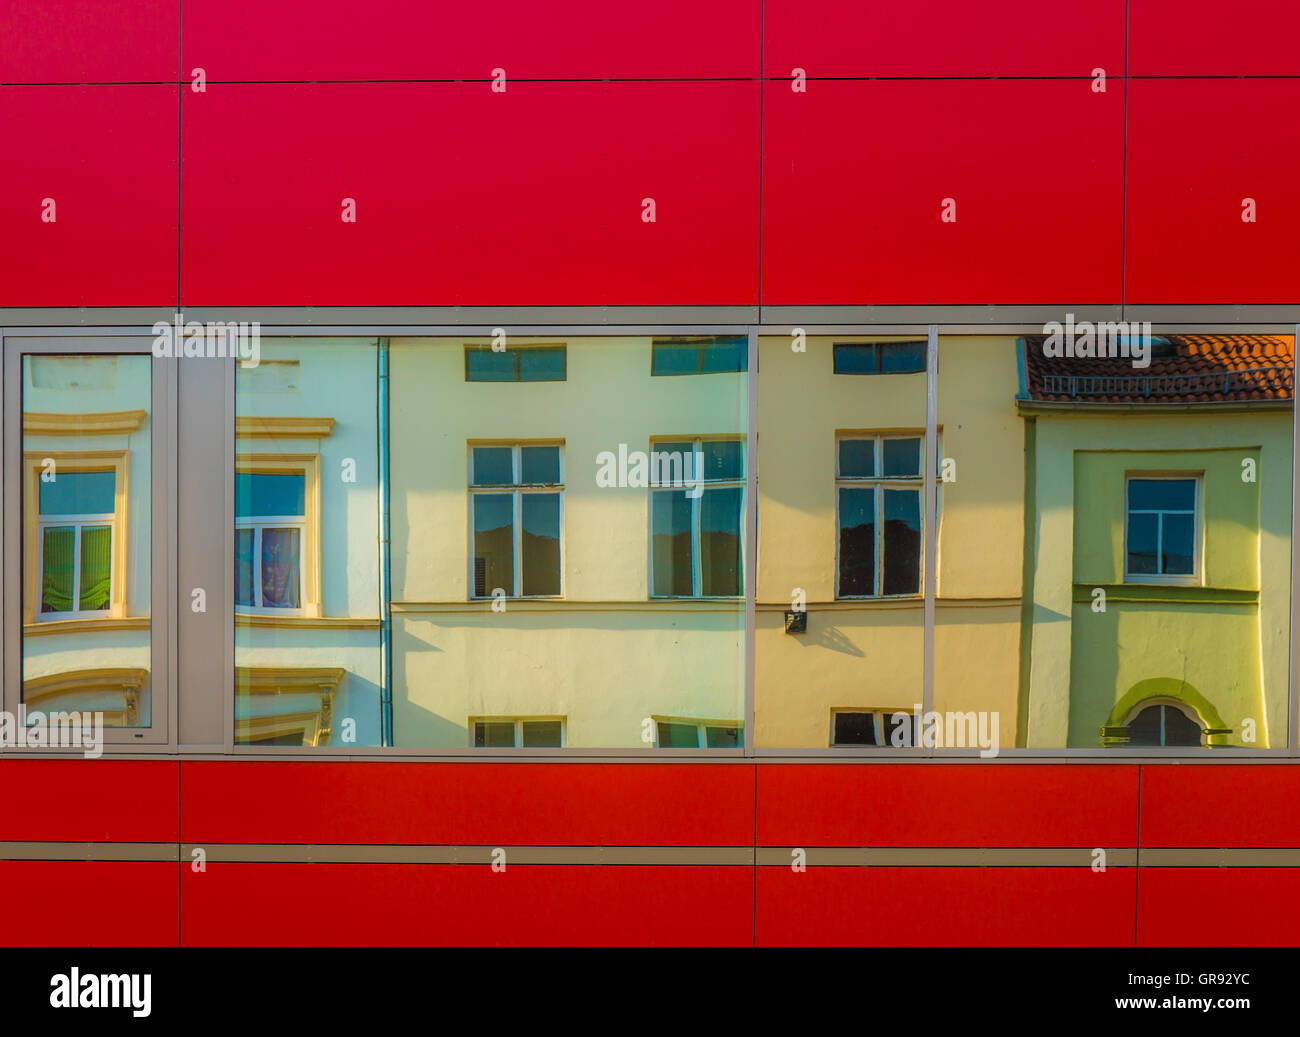 Modern Red Facade With Reflection Of Old Houses In The Windows - Stock Image